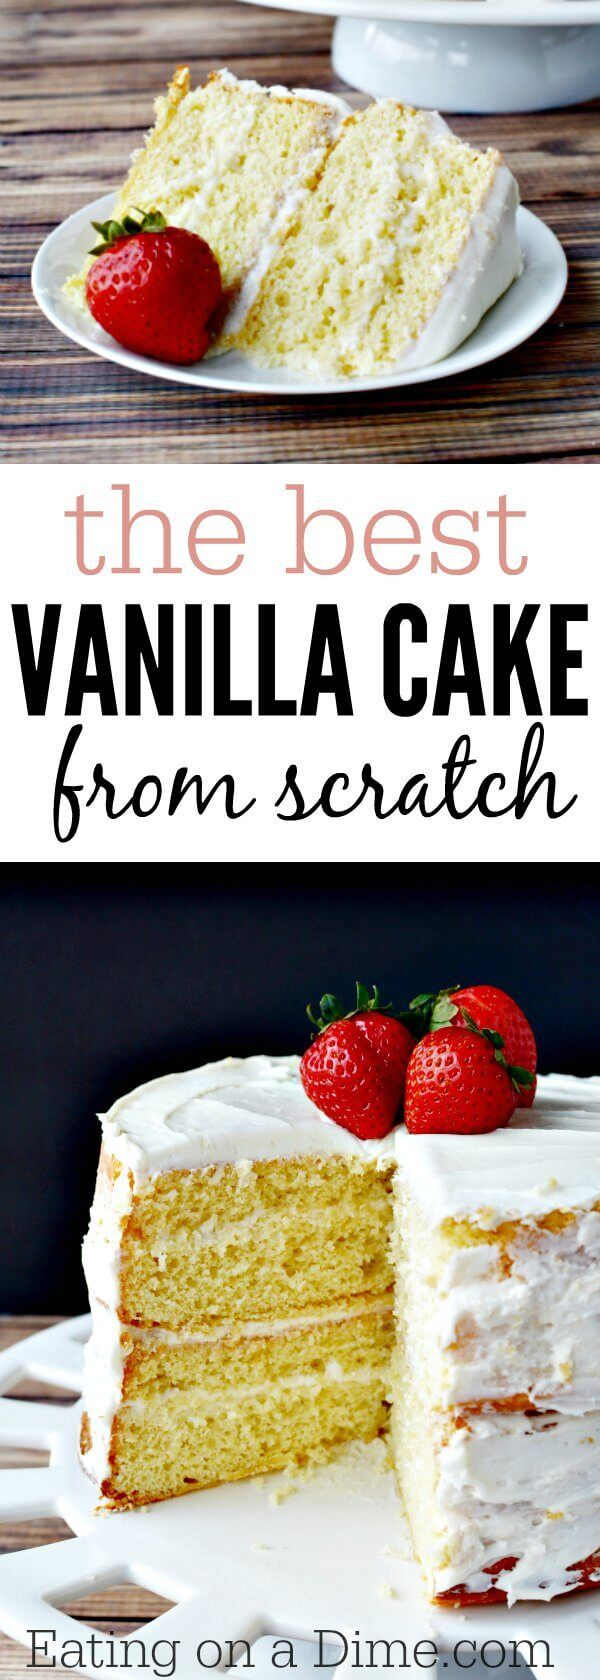 Learn how to make a vanilla cake from scratch! This homemade vanilla cake recipe from scratch is so easy. Vanilla cake from scratch is so better than a mix. #eatingonadime